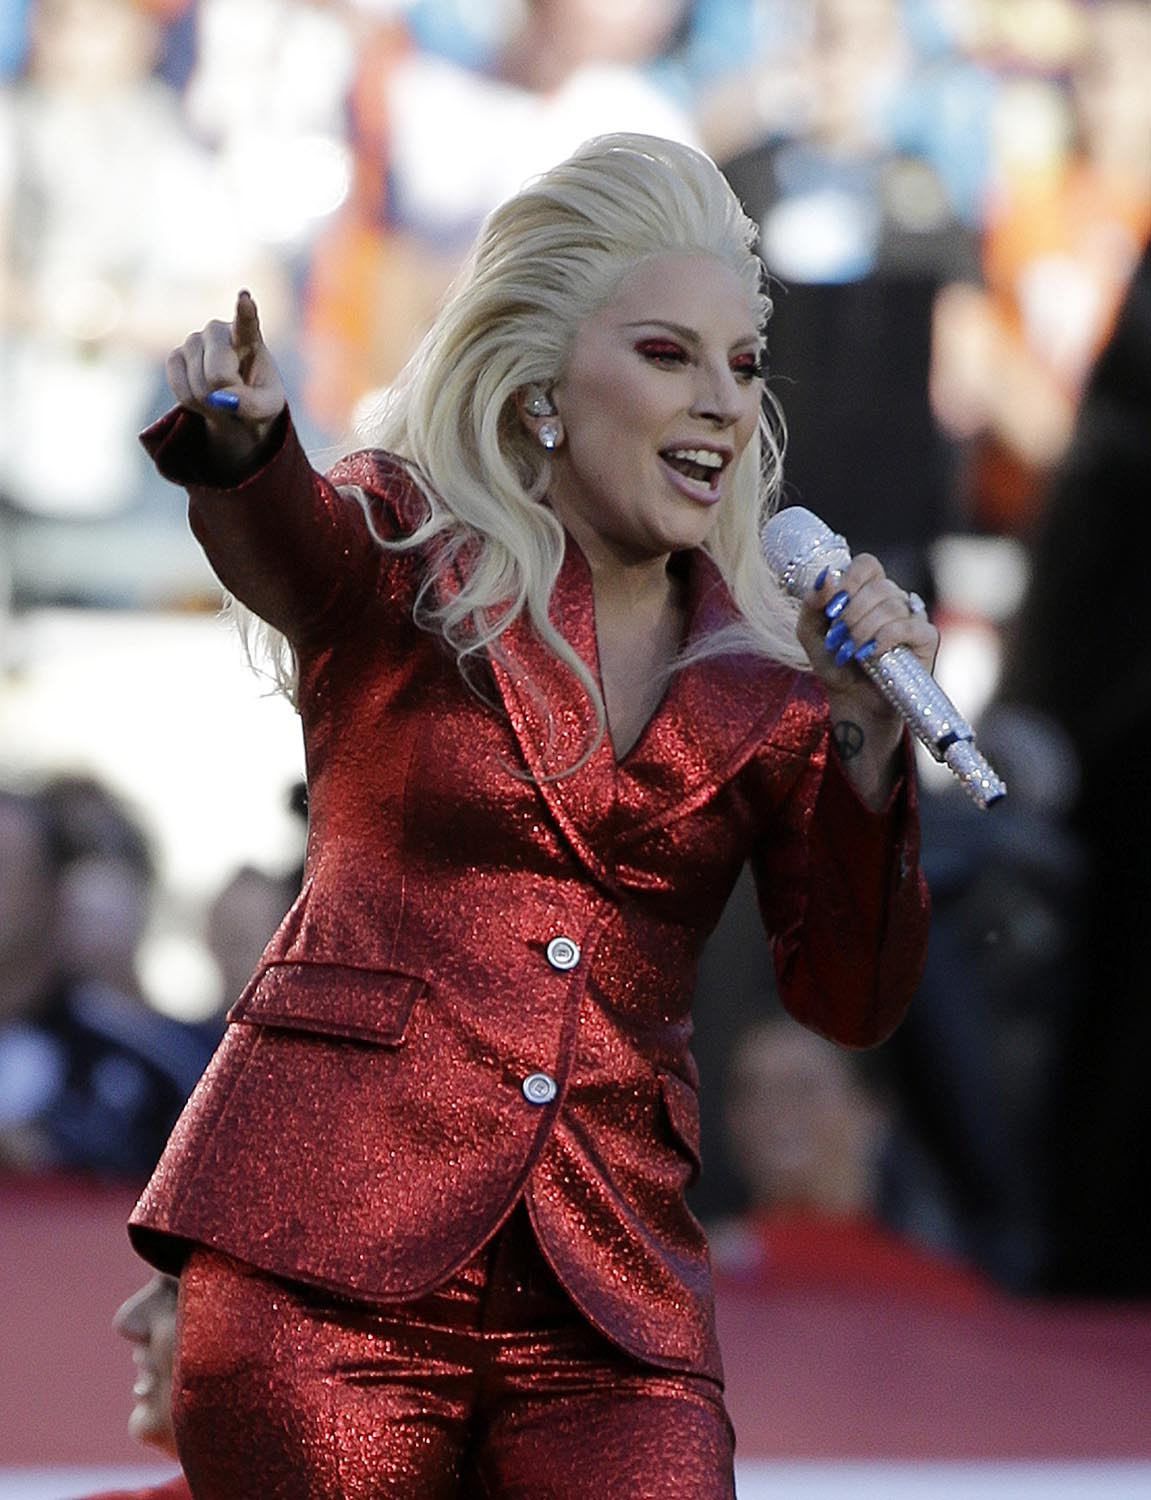 "<div class=""meta image-caption""><div class=""origin-logo origin-image ap""><span>AP</span></div><span class=""caption-text"">2016: Lady Gaga sings the national anthem before the NFL Super Bowl 50 football game between the Denver Broncos and the Carolina Panthers Sunday, Feb. 7, 2016. (AP Photo/Gregory Bull)</span></div>"